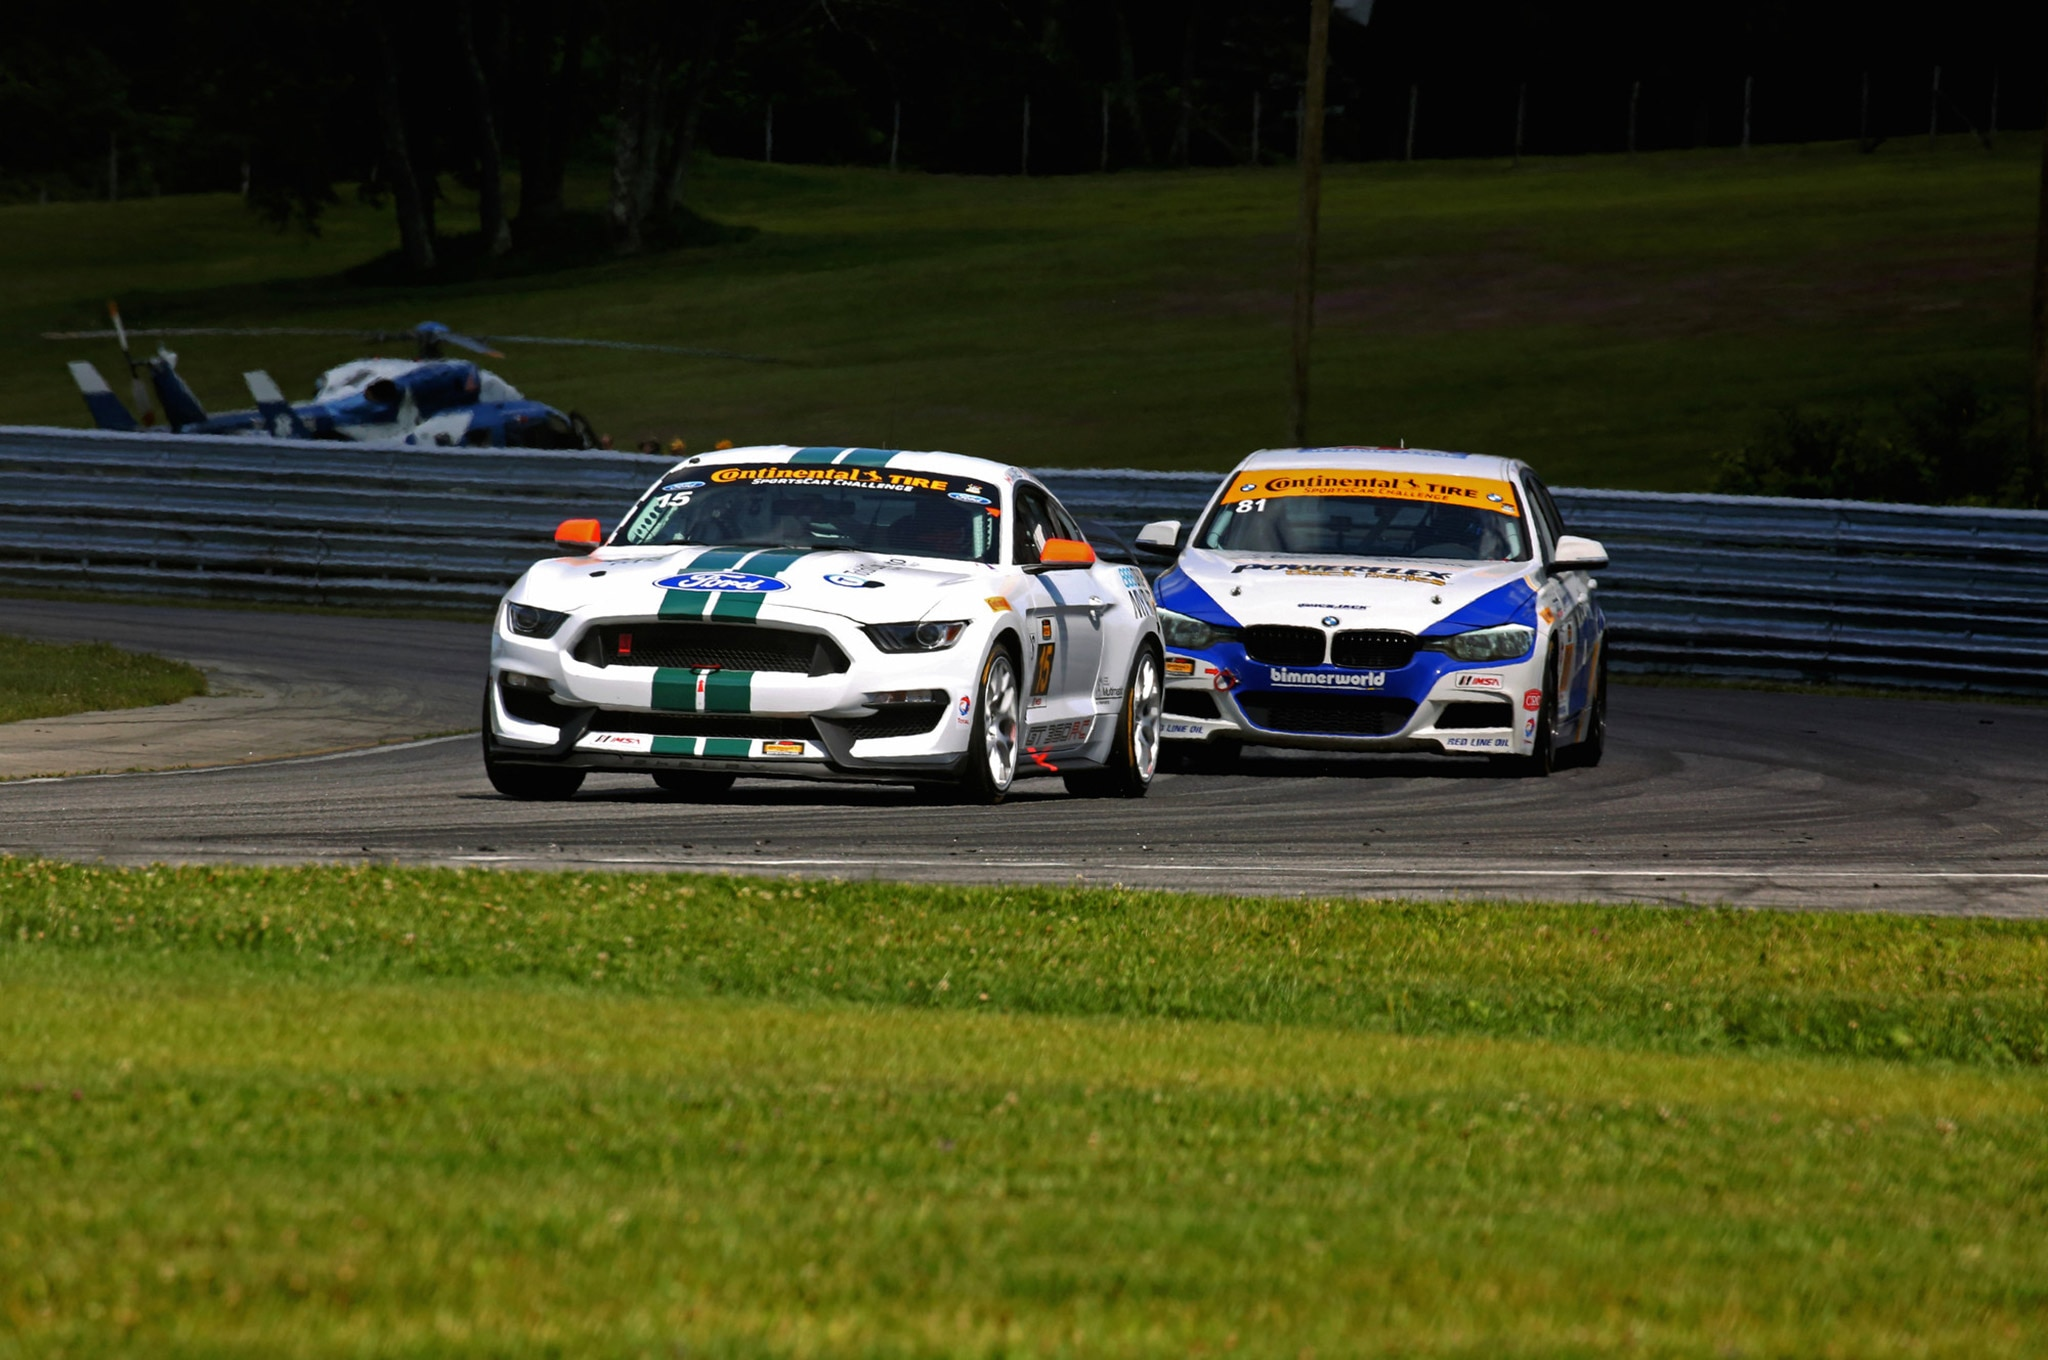 Shelby Gt350r C Takes Second Win At Lime Rock 03